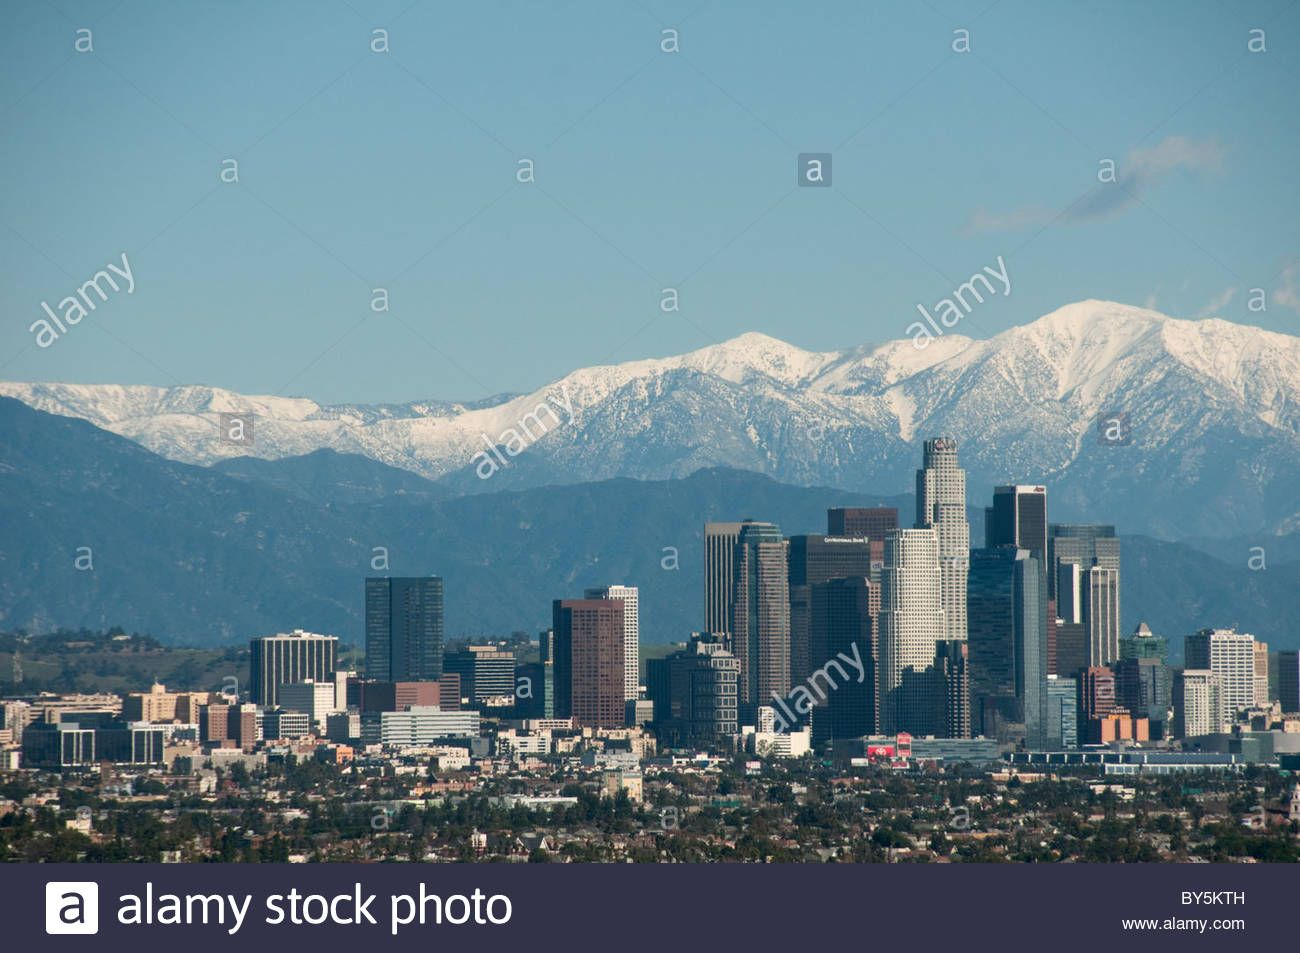 Downtown Los Angeles Skyline And Snow Capped San Gabriel Mountains Stock Photo 33931425 Alamy San Gabriel Mountains Los Angeles Skyline Skyline